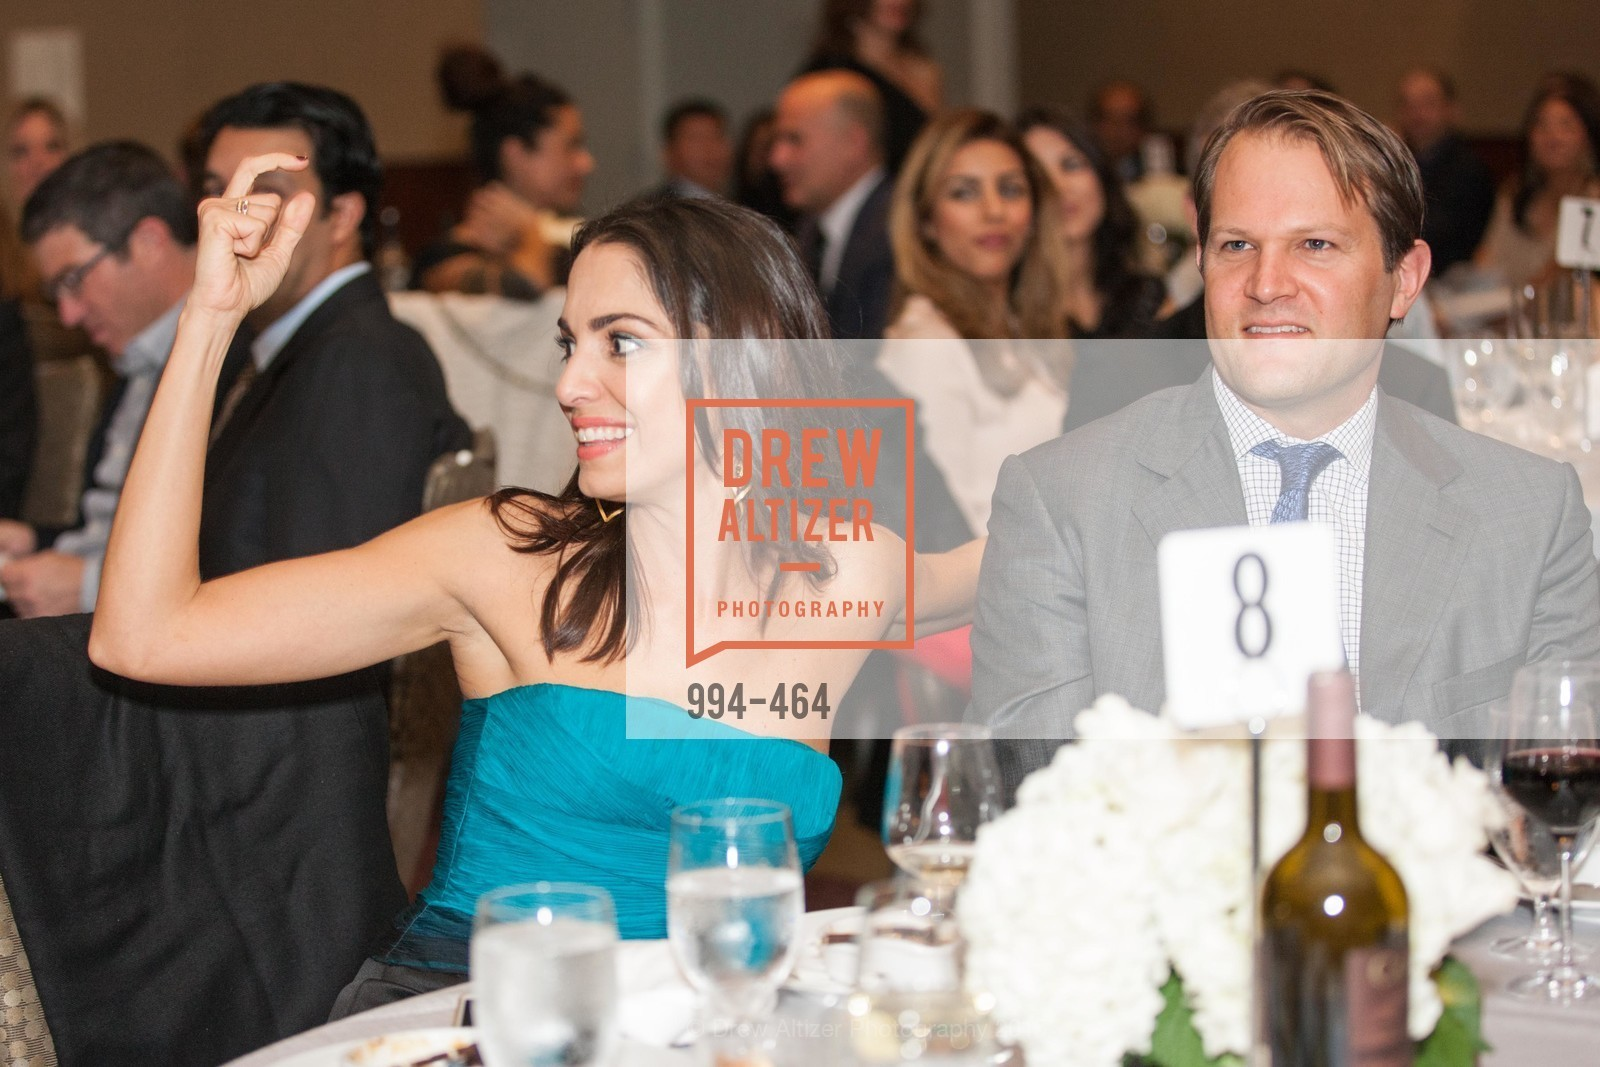 Shirin Aryanpour, Operation Smile Presents THE SAN FRANCISCO 2015 SMILE GALA, InterContinental Hotel, November 7th, 2015,Drew Altizer, Drew Altizer Photography, full-service agency, private events, San Francisco photographer, photographer california